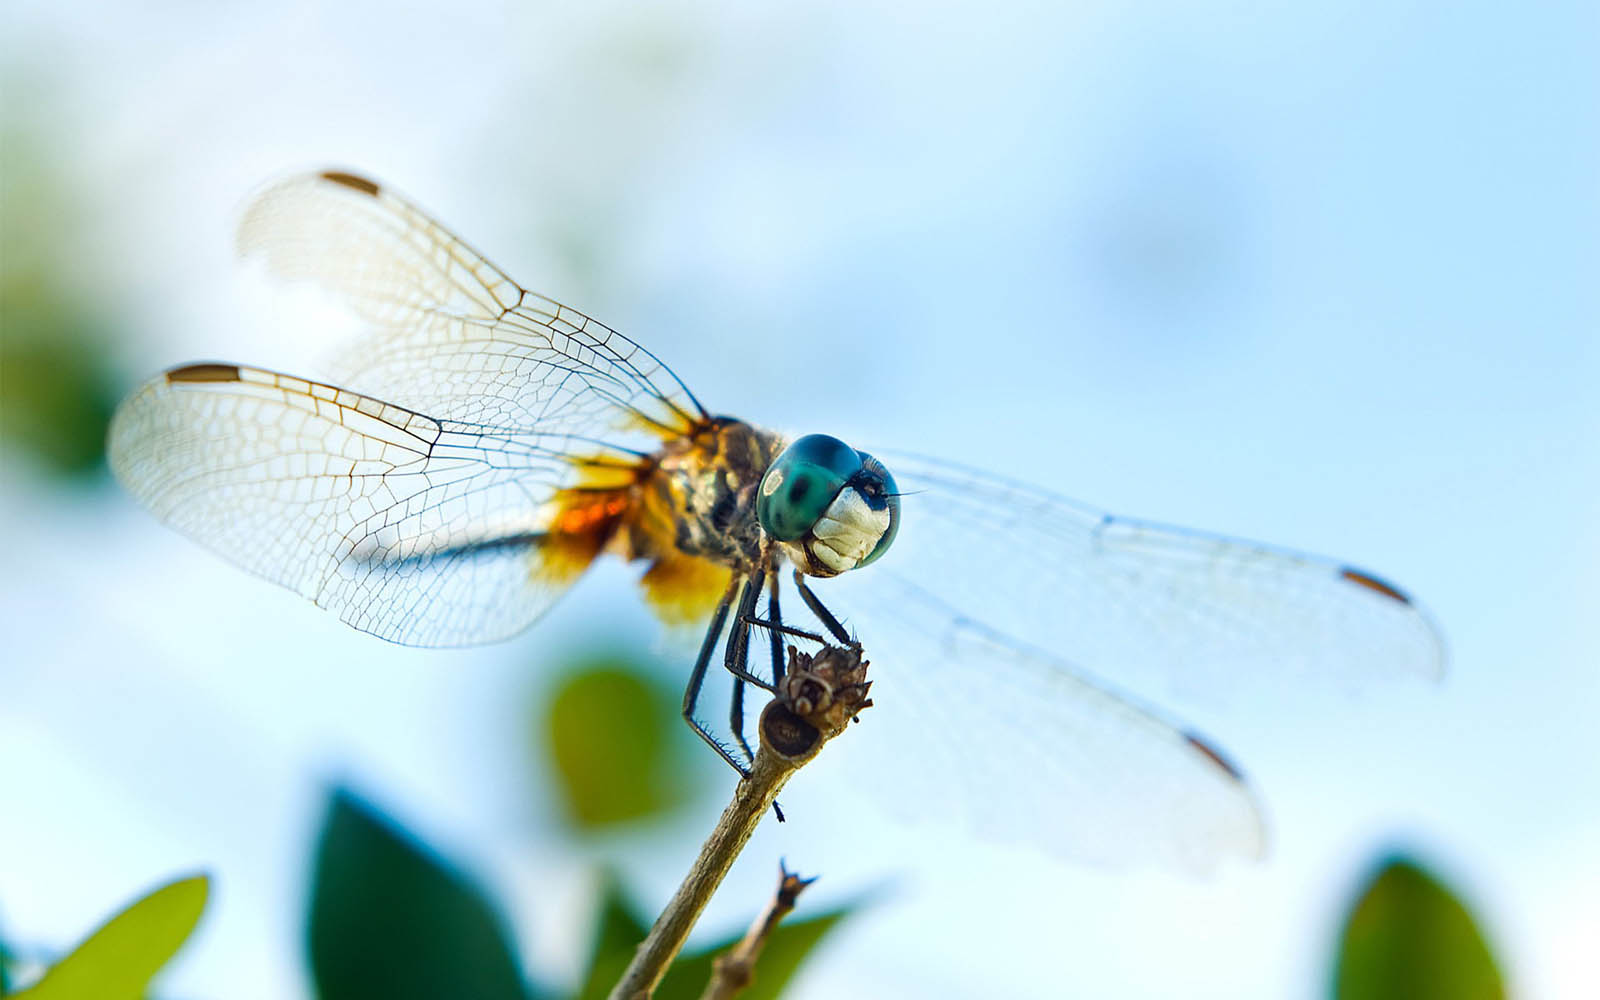 Tag Dragonfly Wallpapers Backgrounds PhotosImages And Pictures For